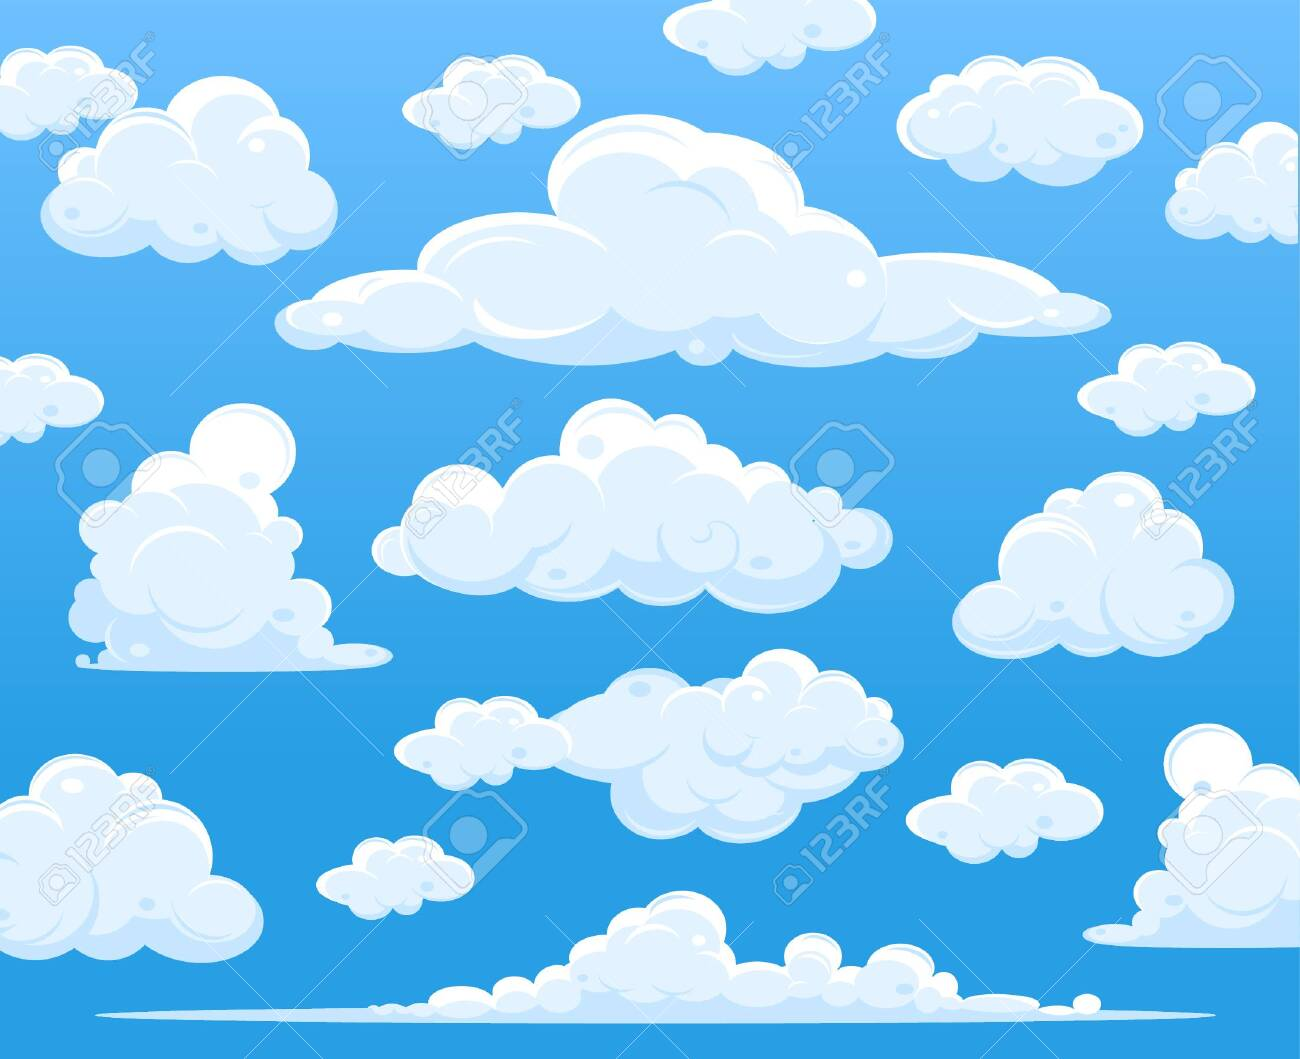 Blue sky with clouds, vector - 148122553